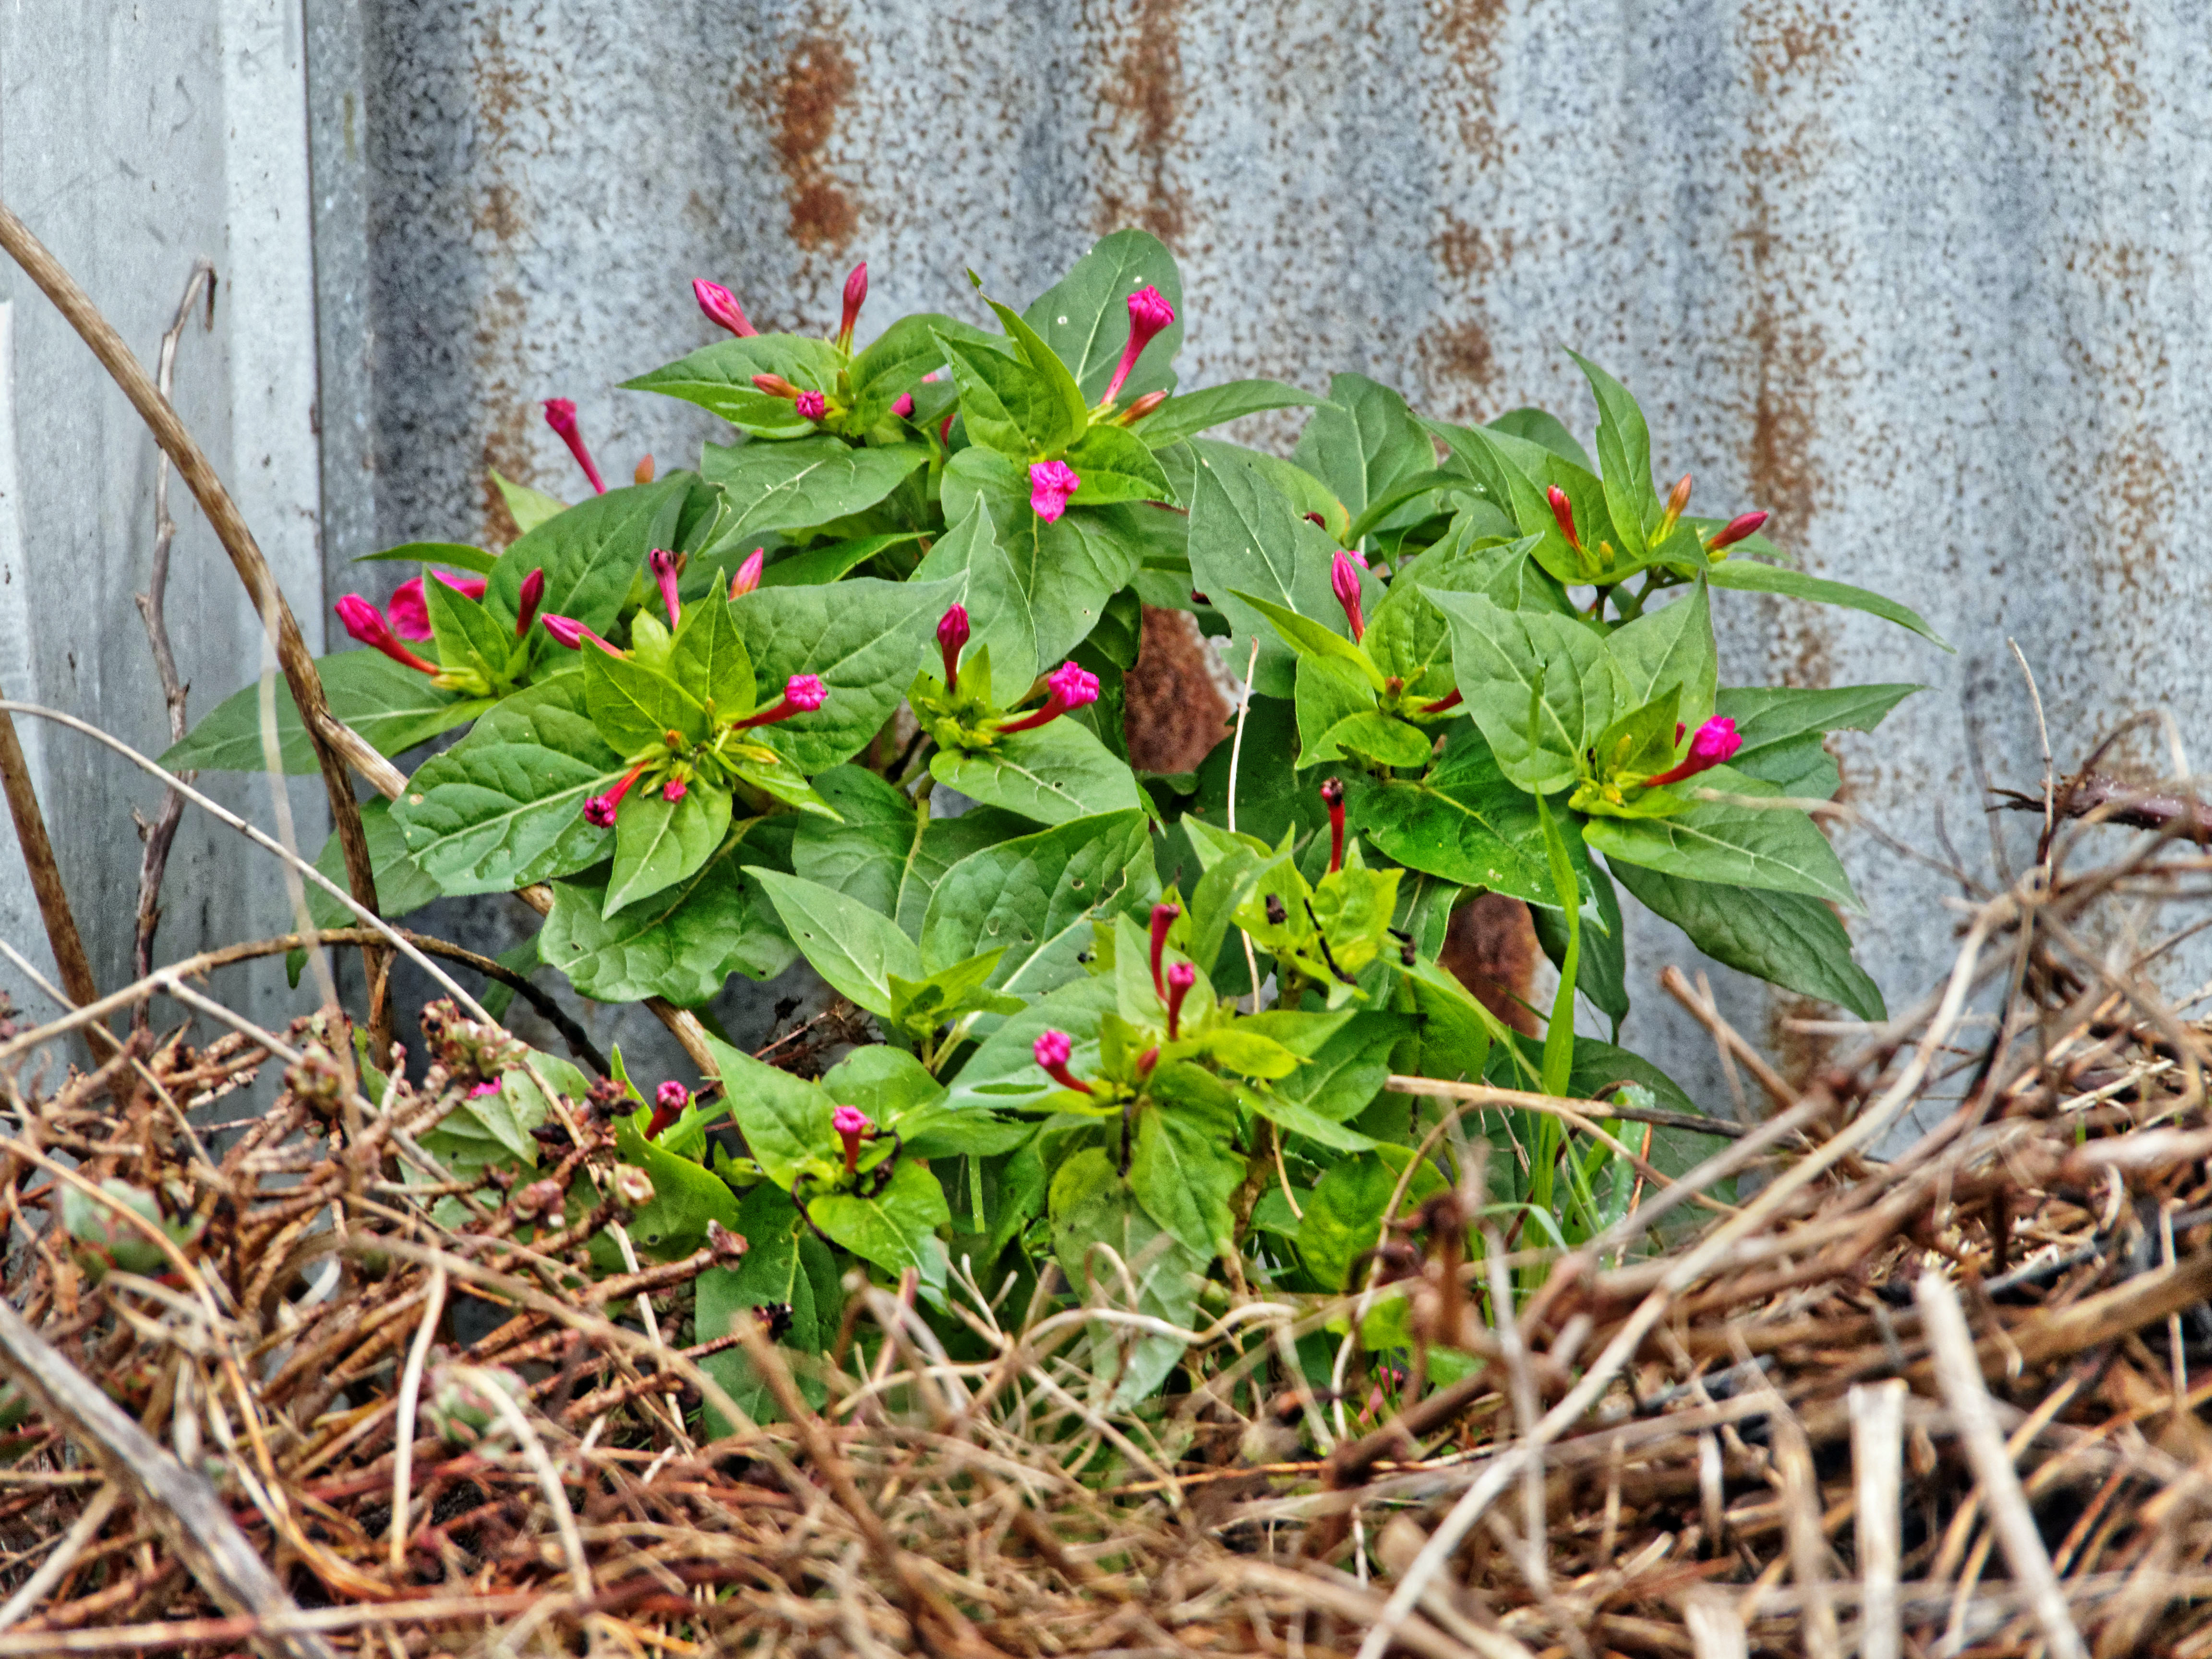 This should be Mirabilis-jalapa-2.jpeg.  Is it missing?